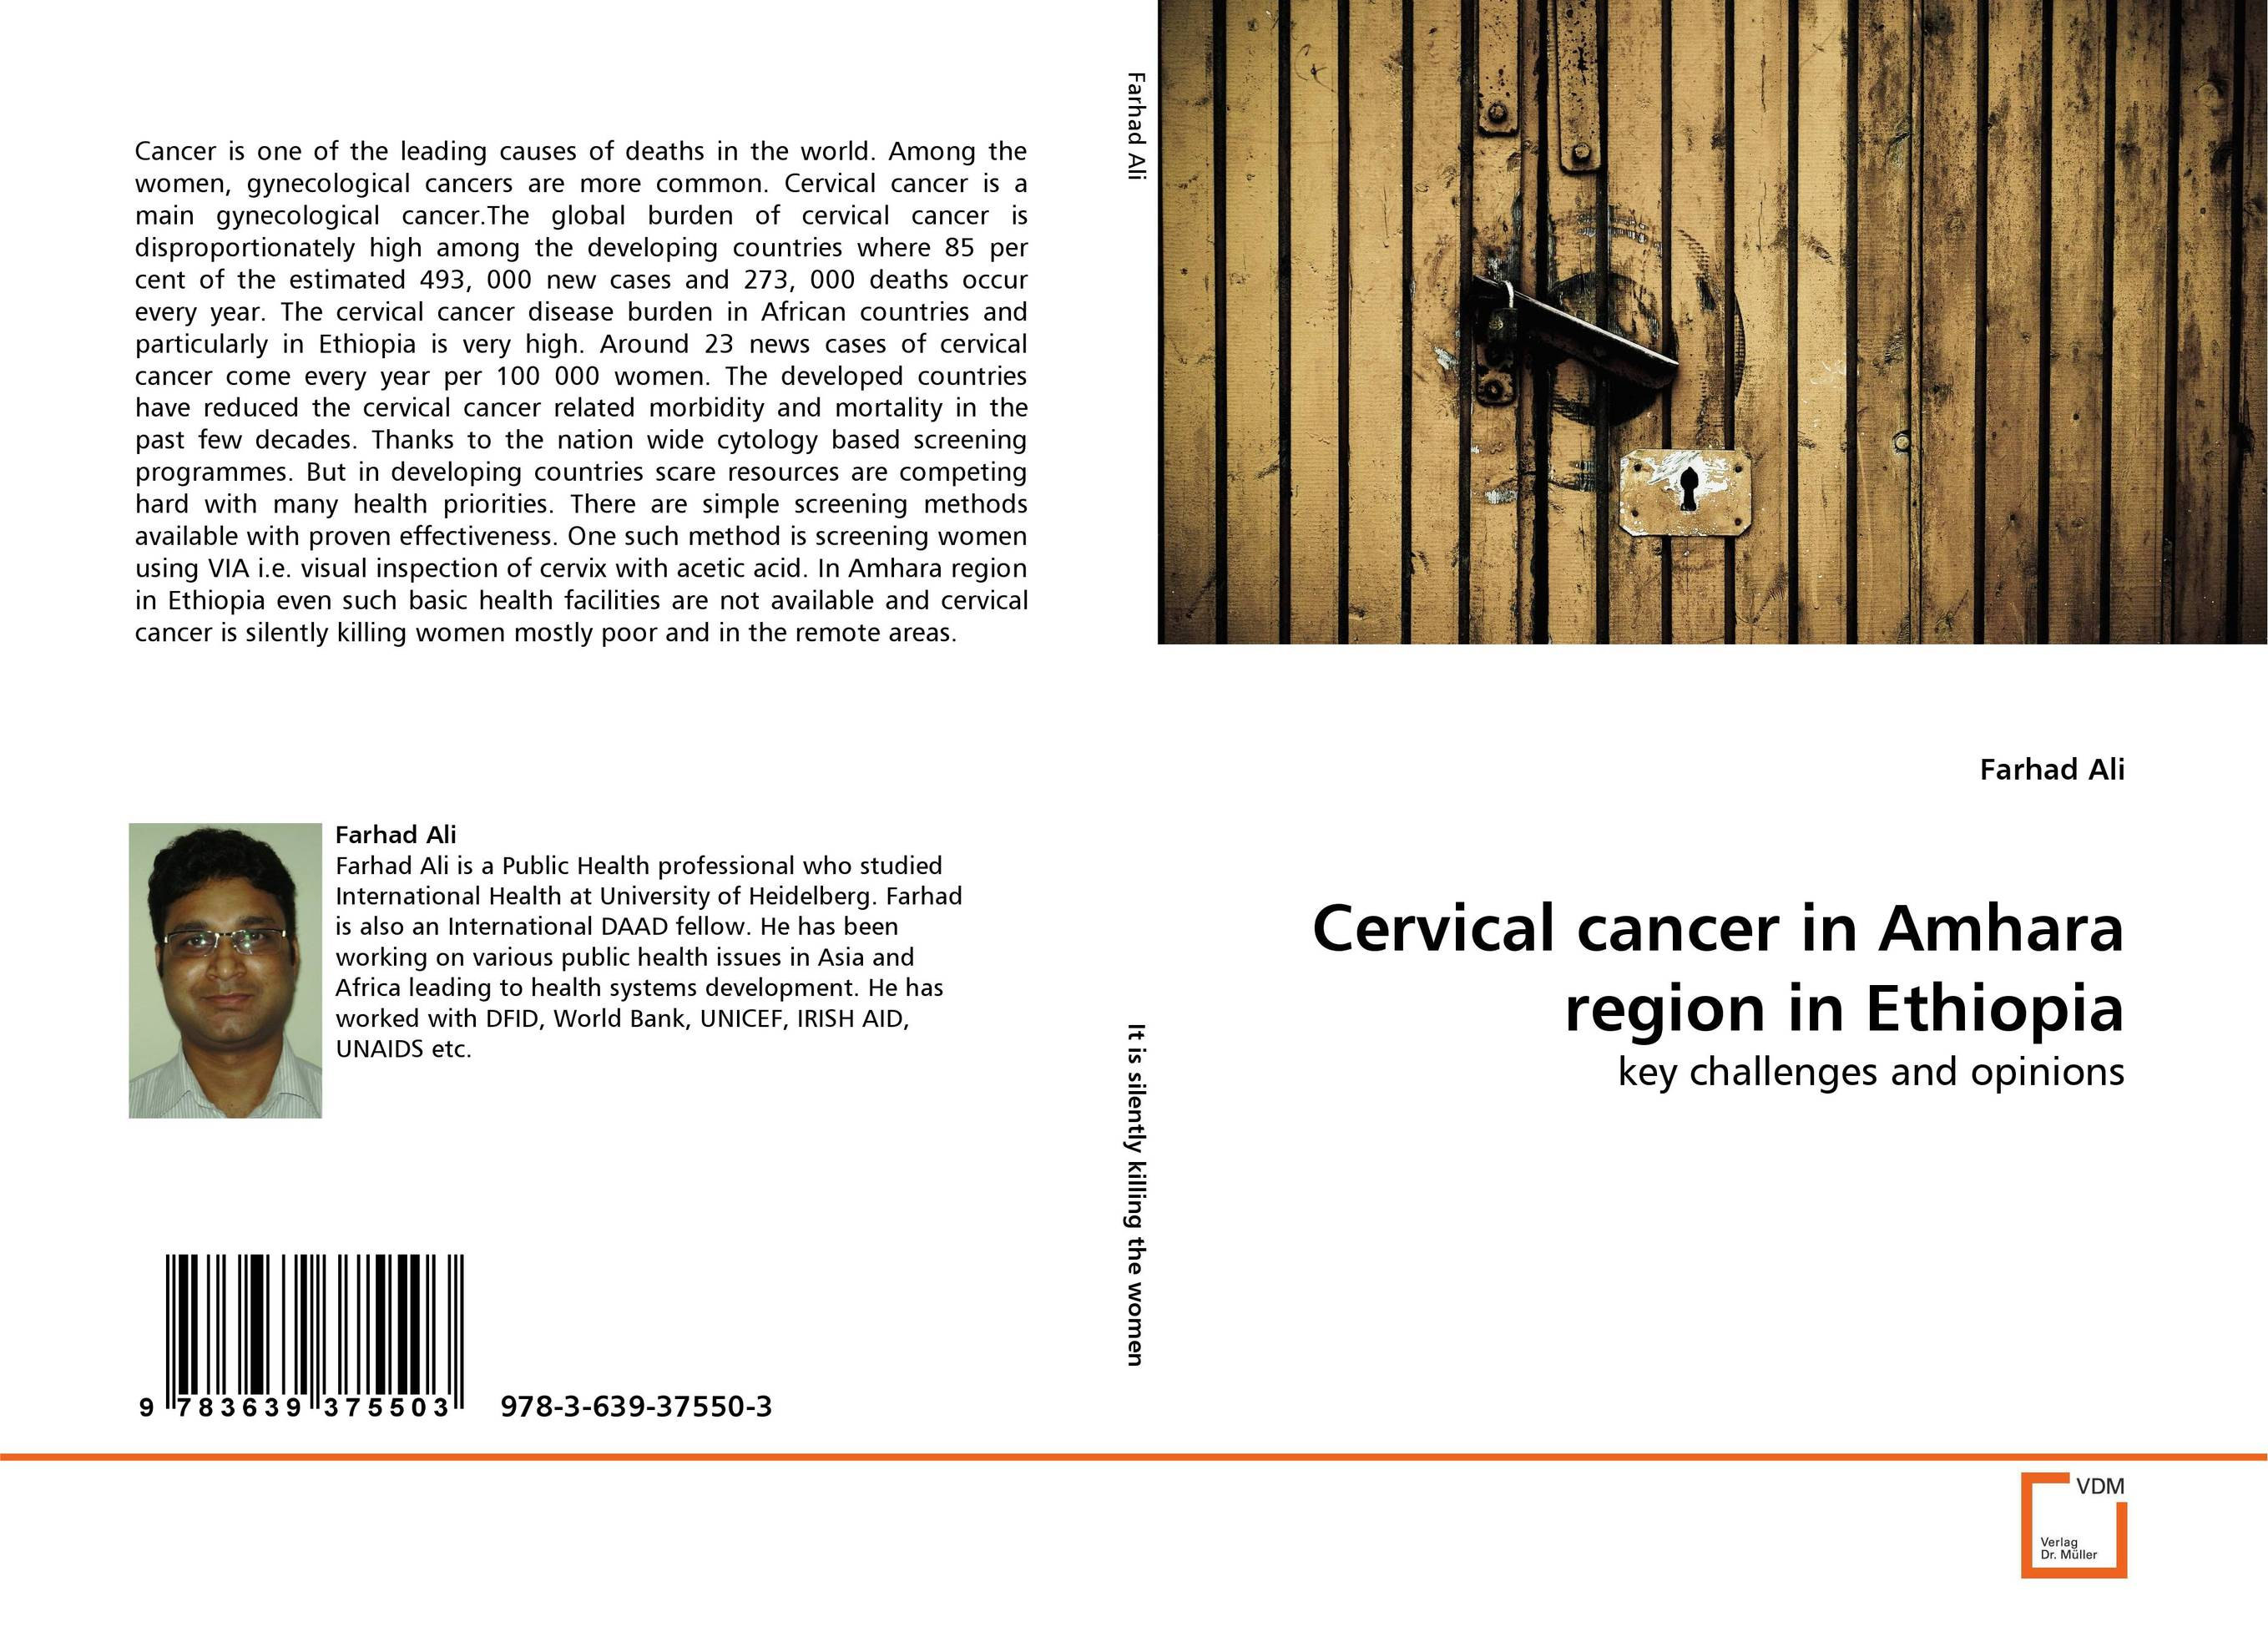 Cervical cancer in Amhara region in Ethiopia late stage diagnosis of cervical cancer